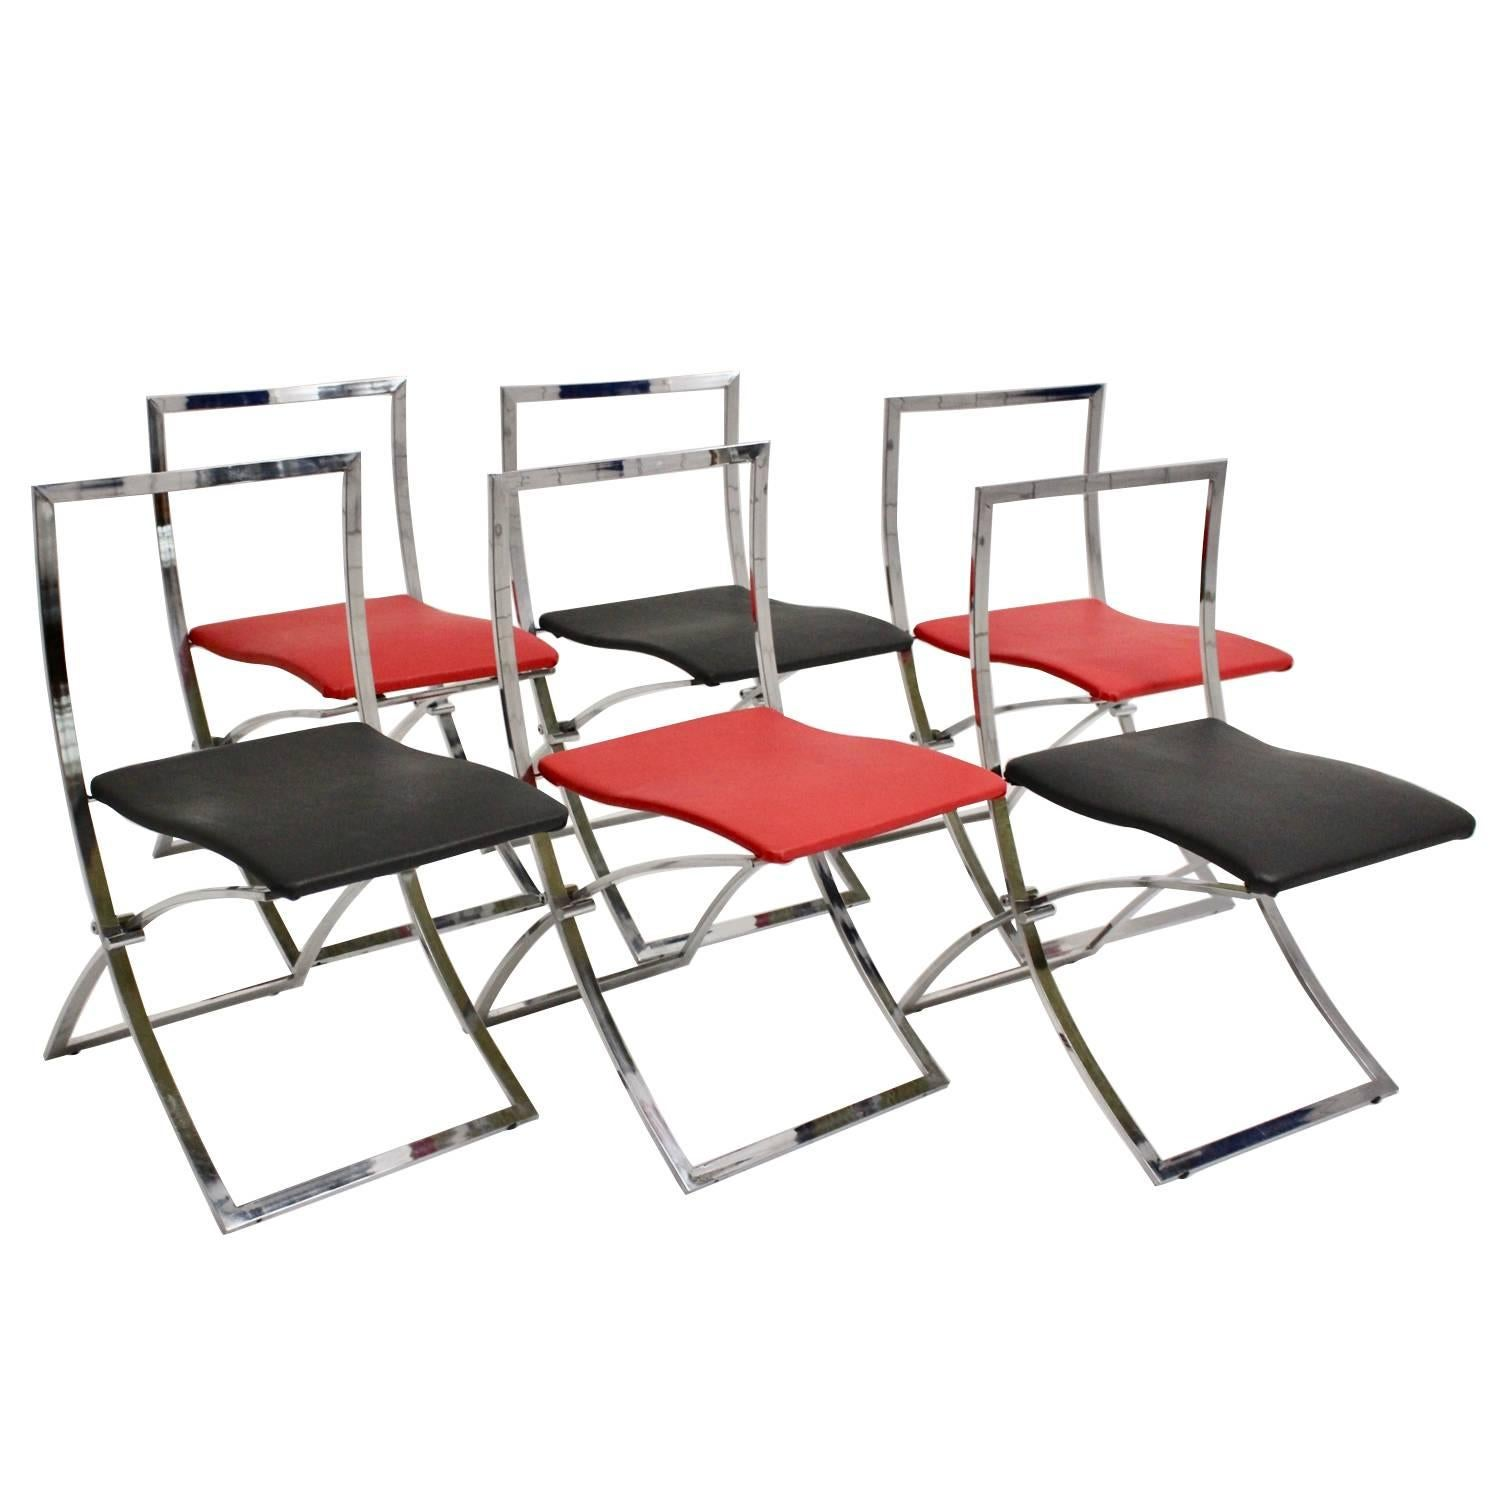 Foldable Dining Chairs Red And Black Folding Dining Chairs Luisa By Marcello Cuneo 1970 Italy